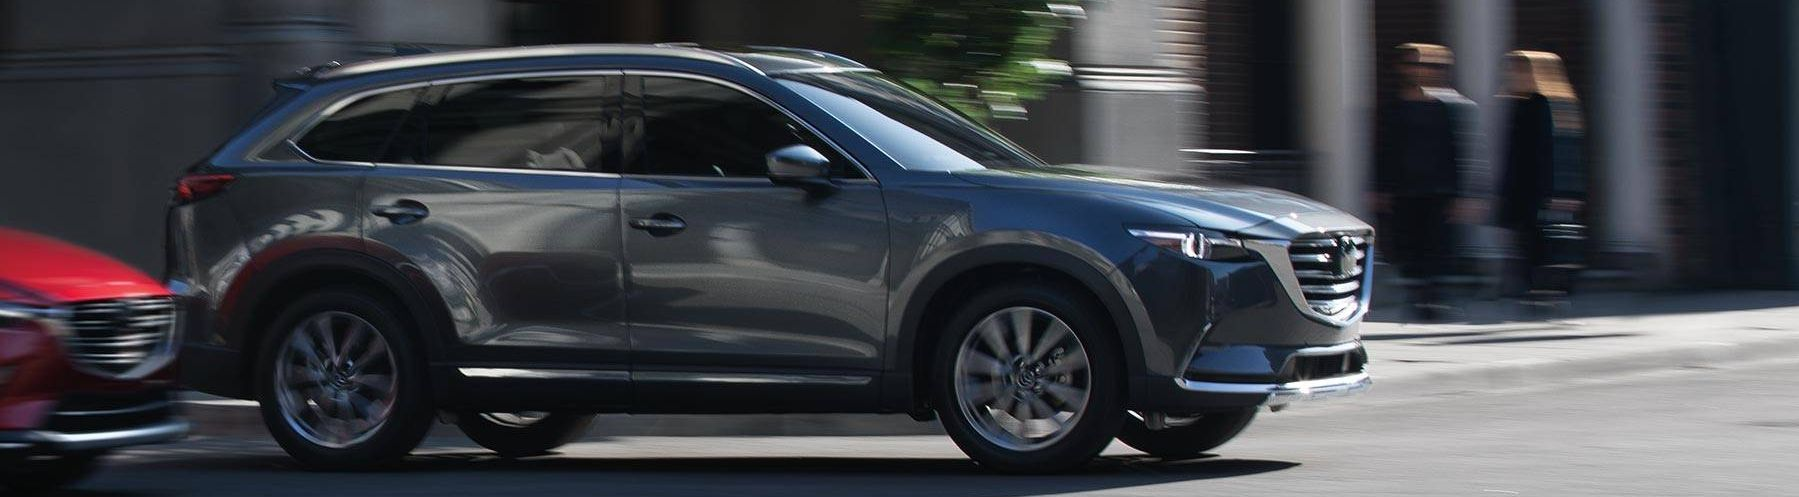 2019 Mazda CX-9 Financing near New Braunfels, TX